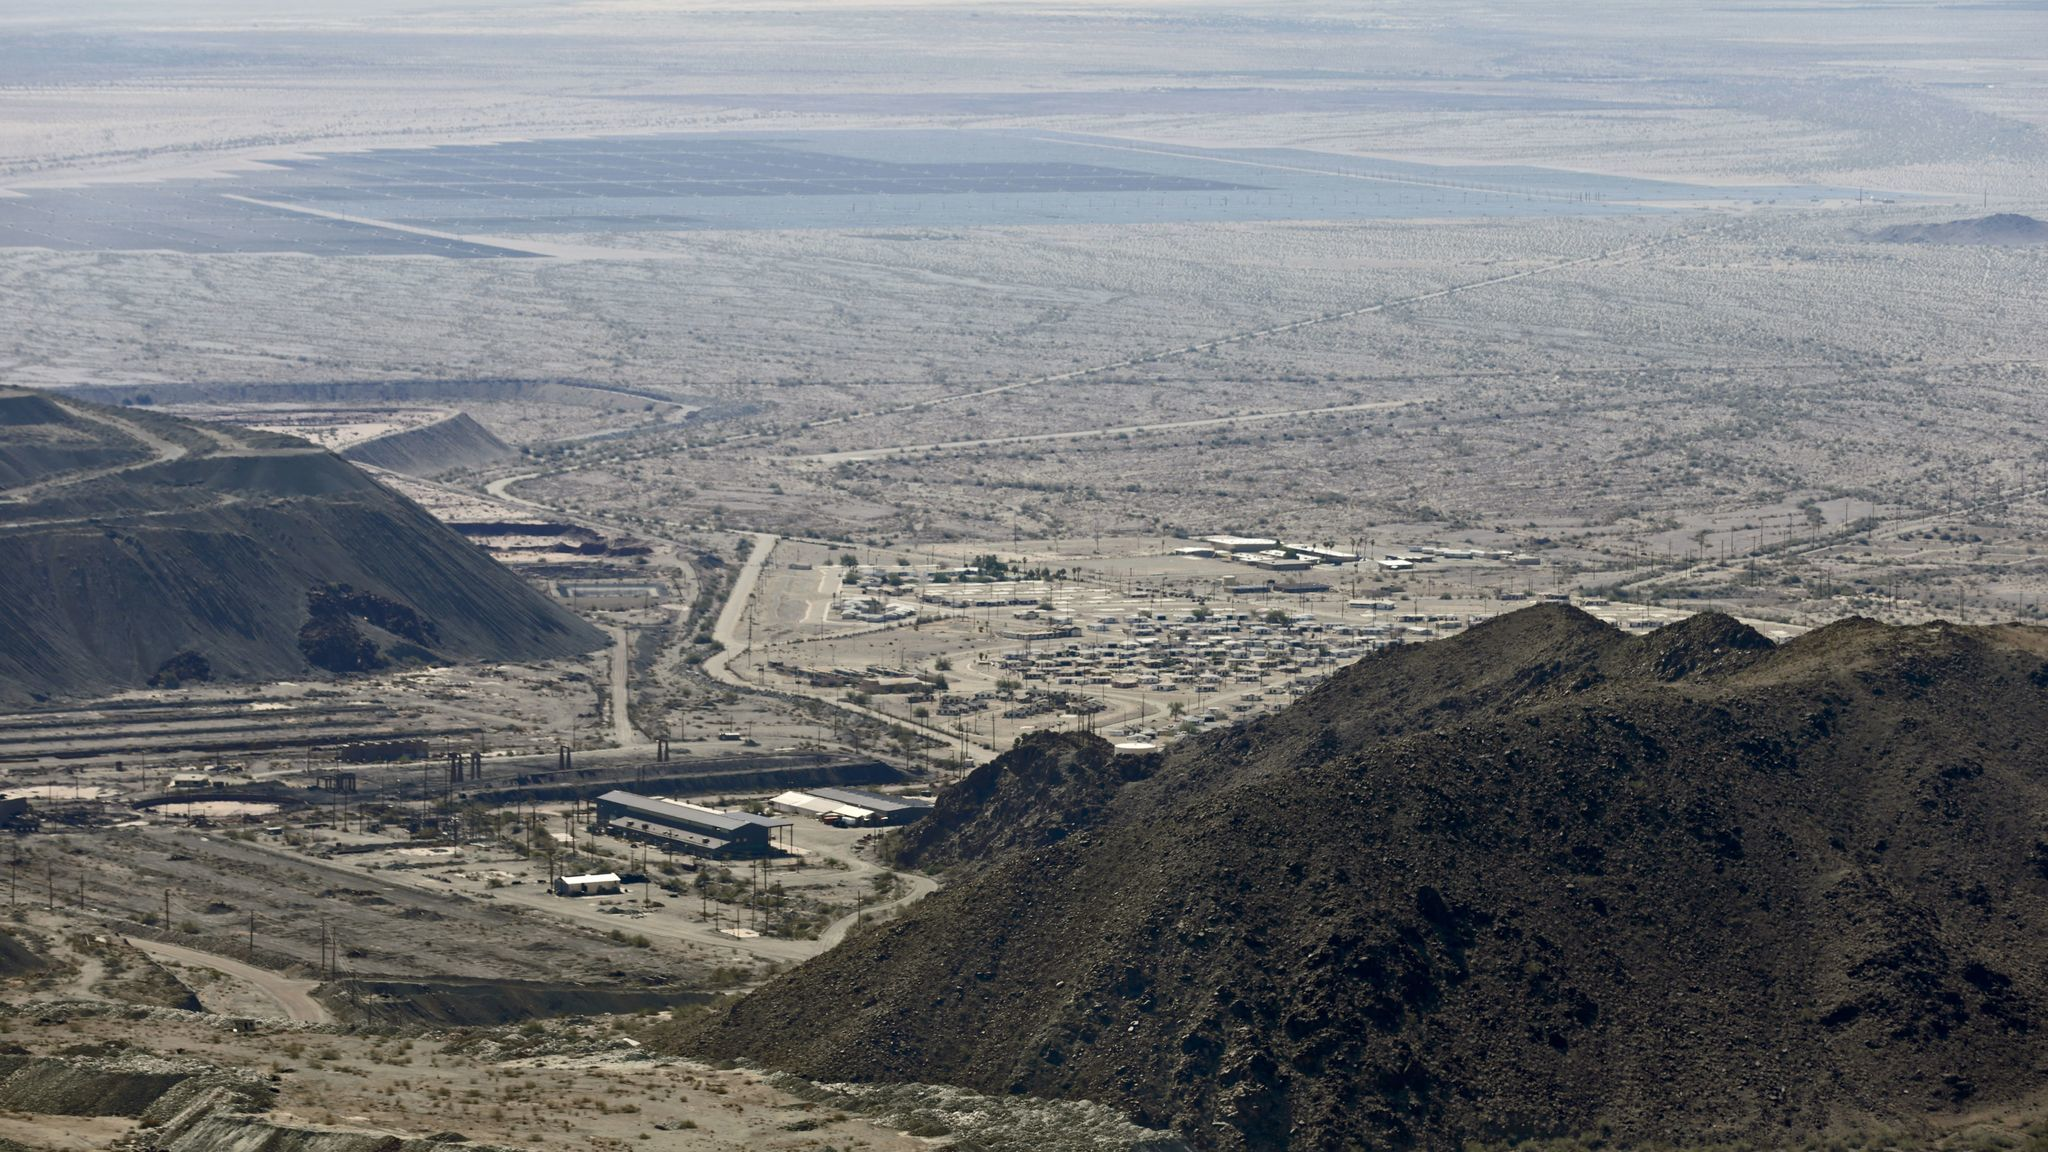 A view of the lower portion of the Eagle Mountain mine site and abandoned company town. A large solar farm is in the distance.